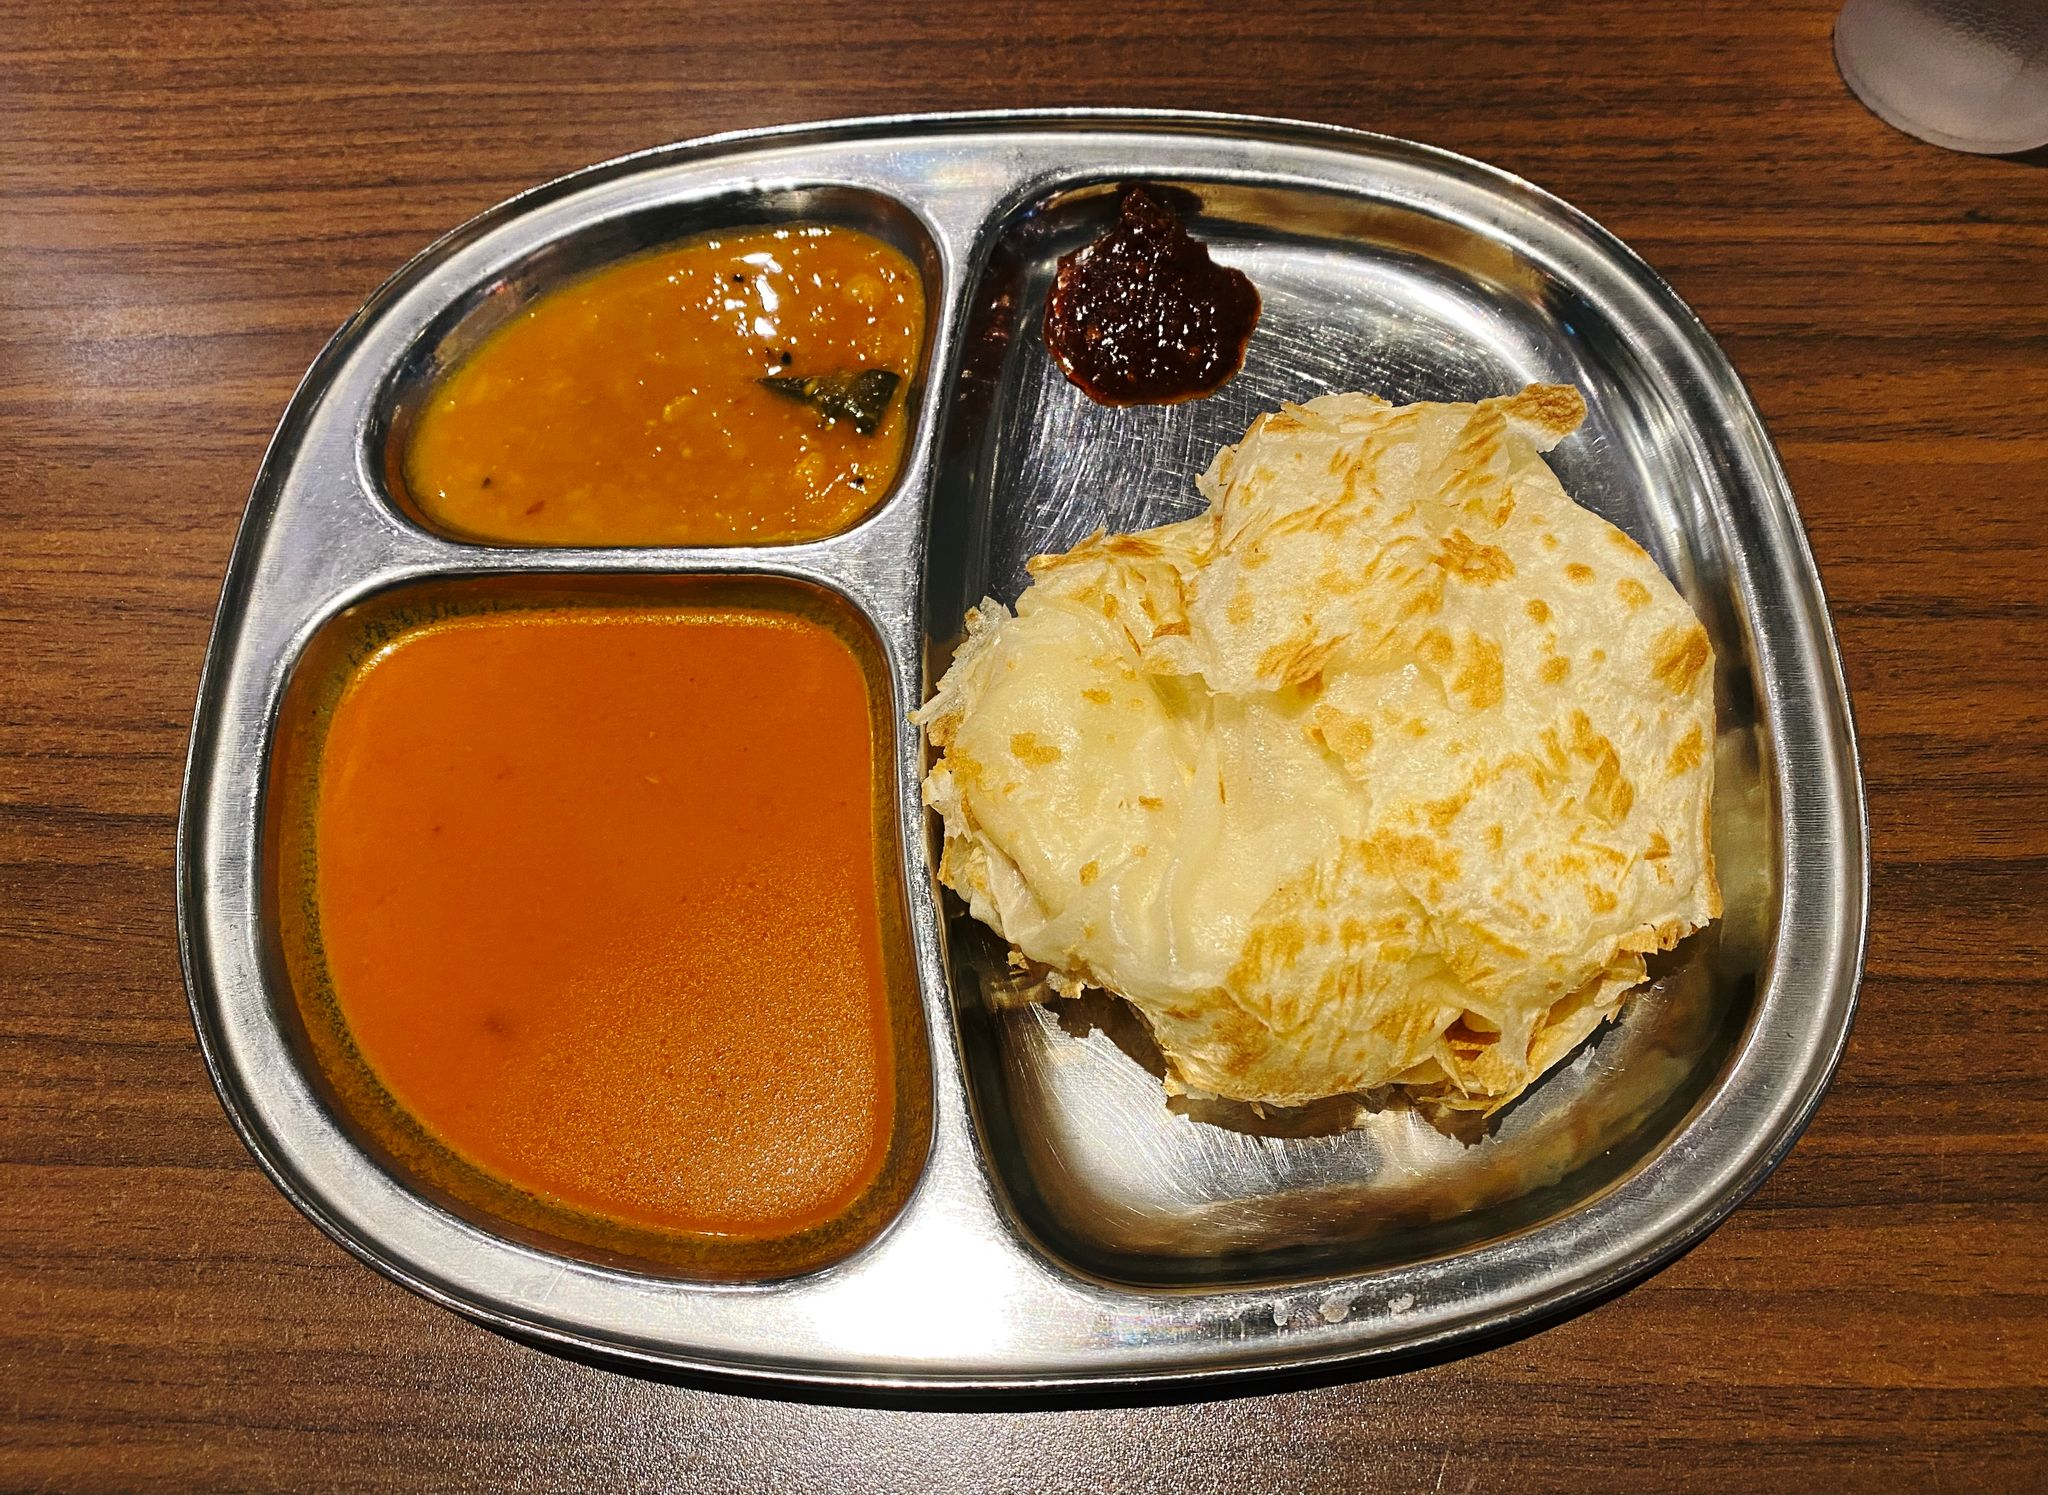 A photo of a roti canai on a plate with two different curry-type sauces for dipping.